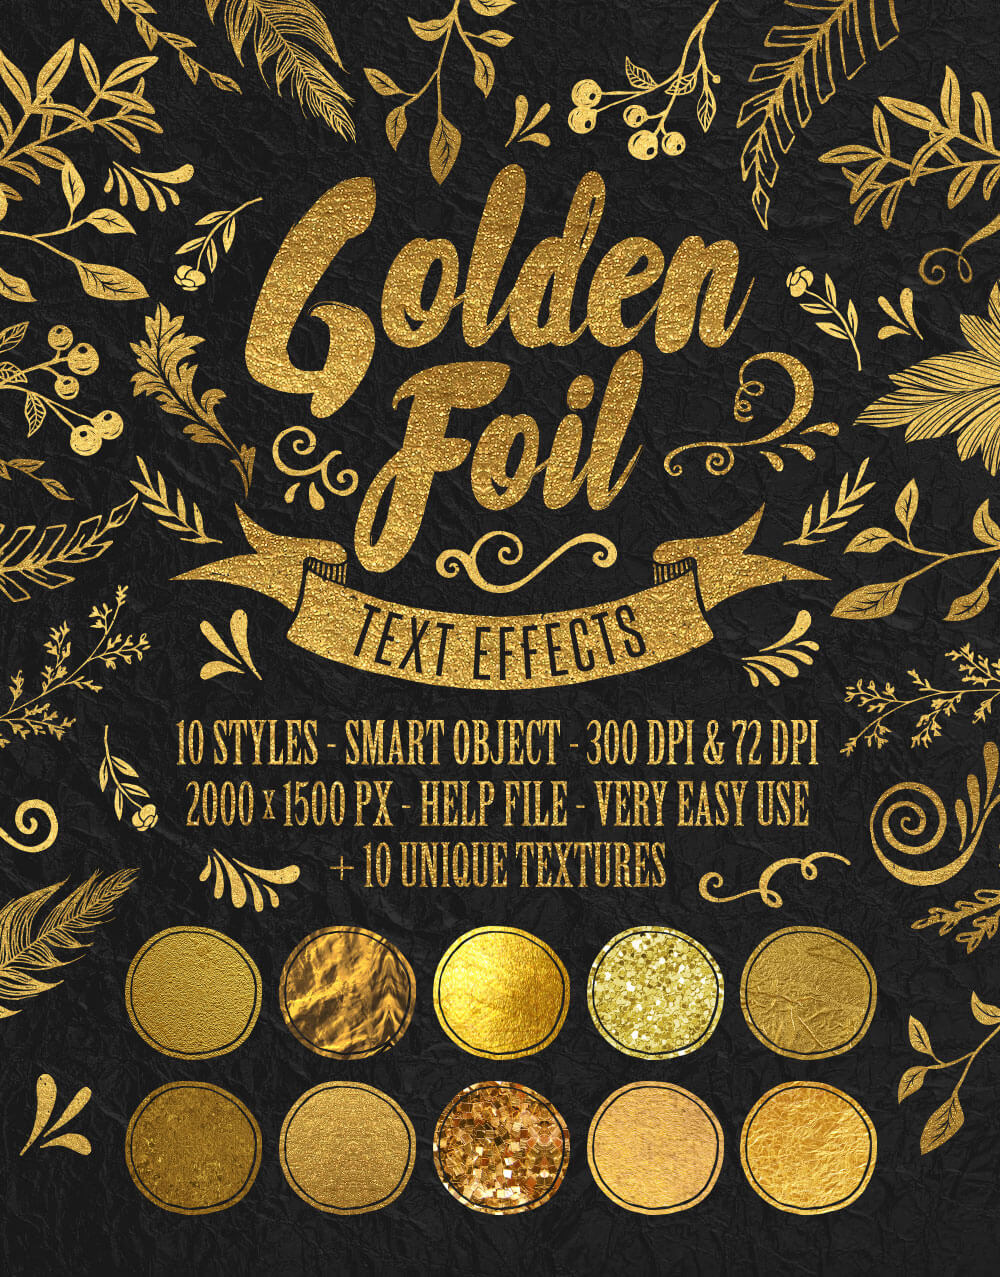 The Golden Foil Text Effects Bundle - Golden Foil Text Effects